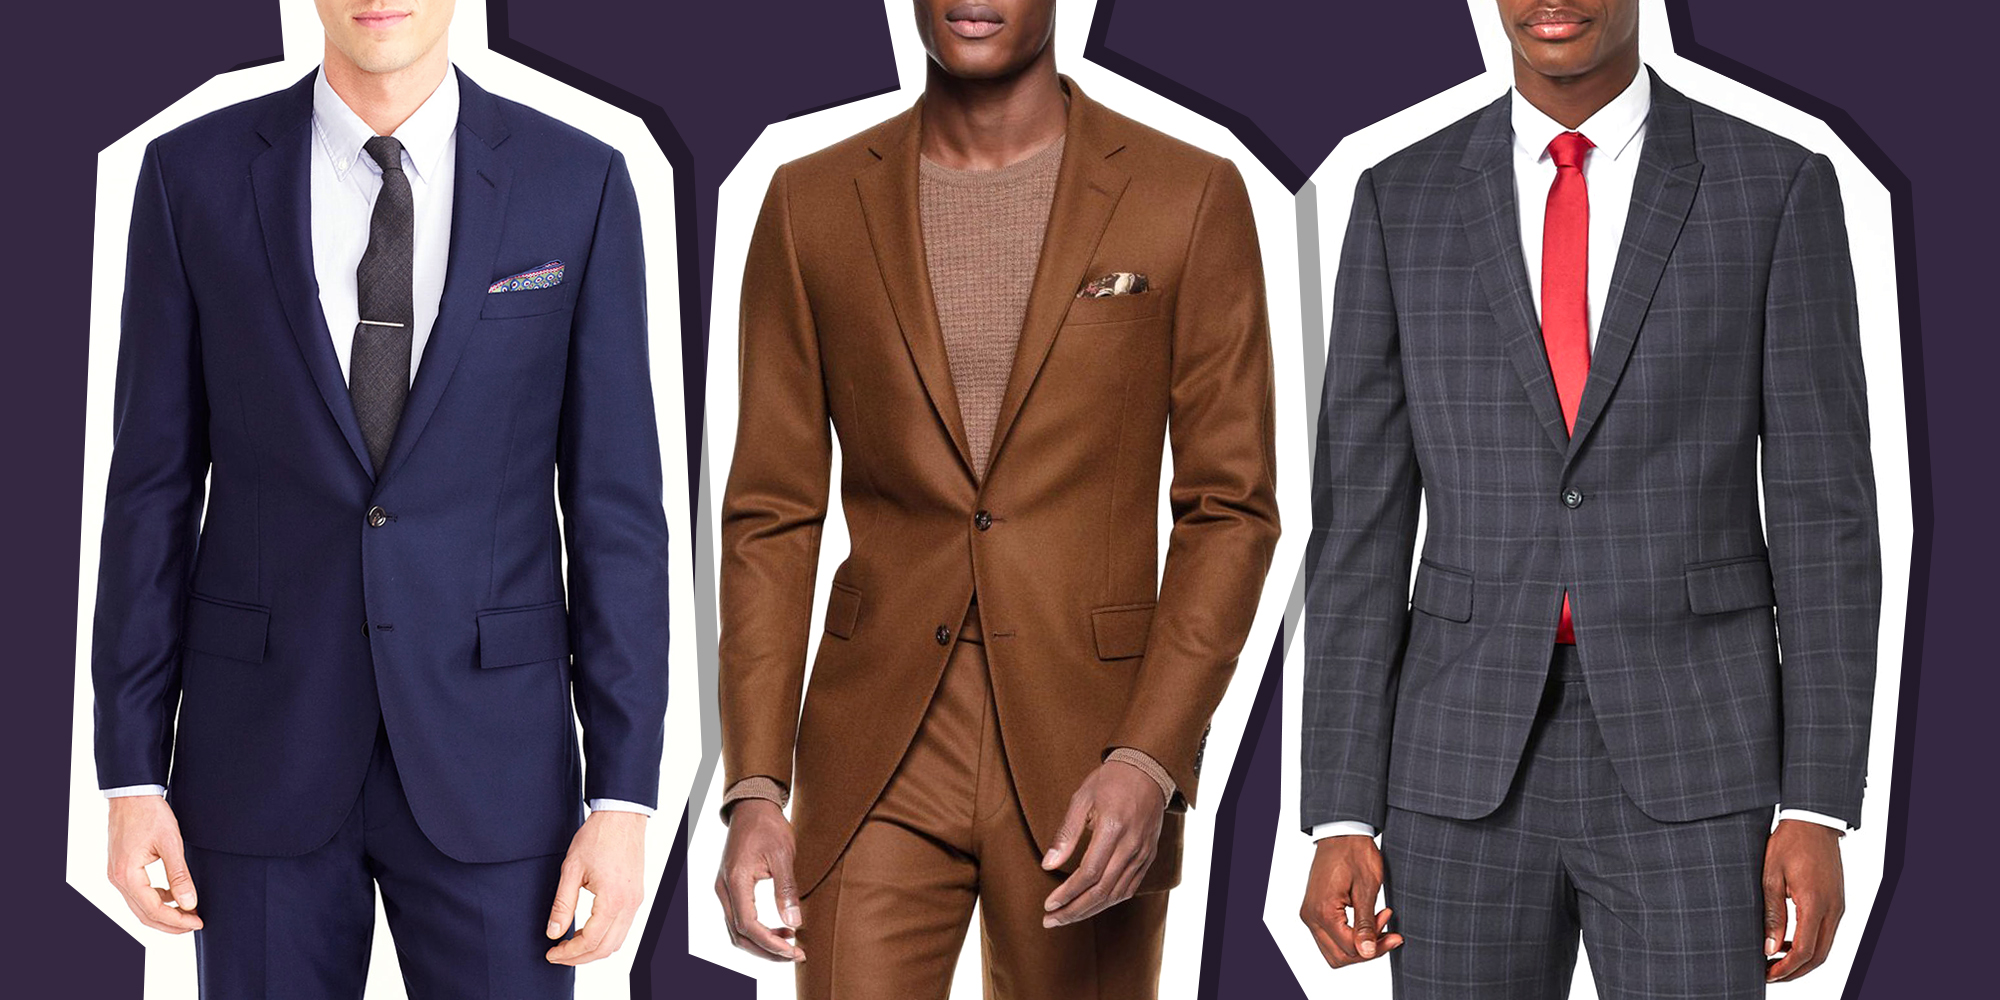 Shop the latest men's suit collections online at theotherqi.cf Find men's suit jackets, blazers, sportcoats, suit pants and more.